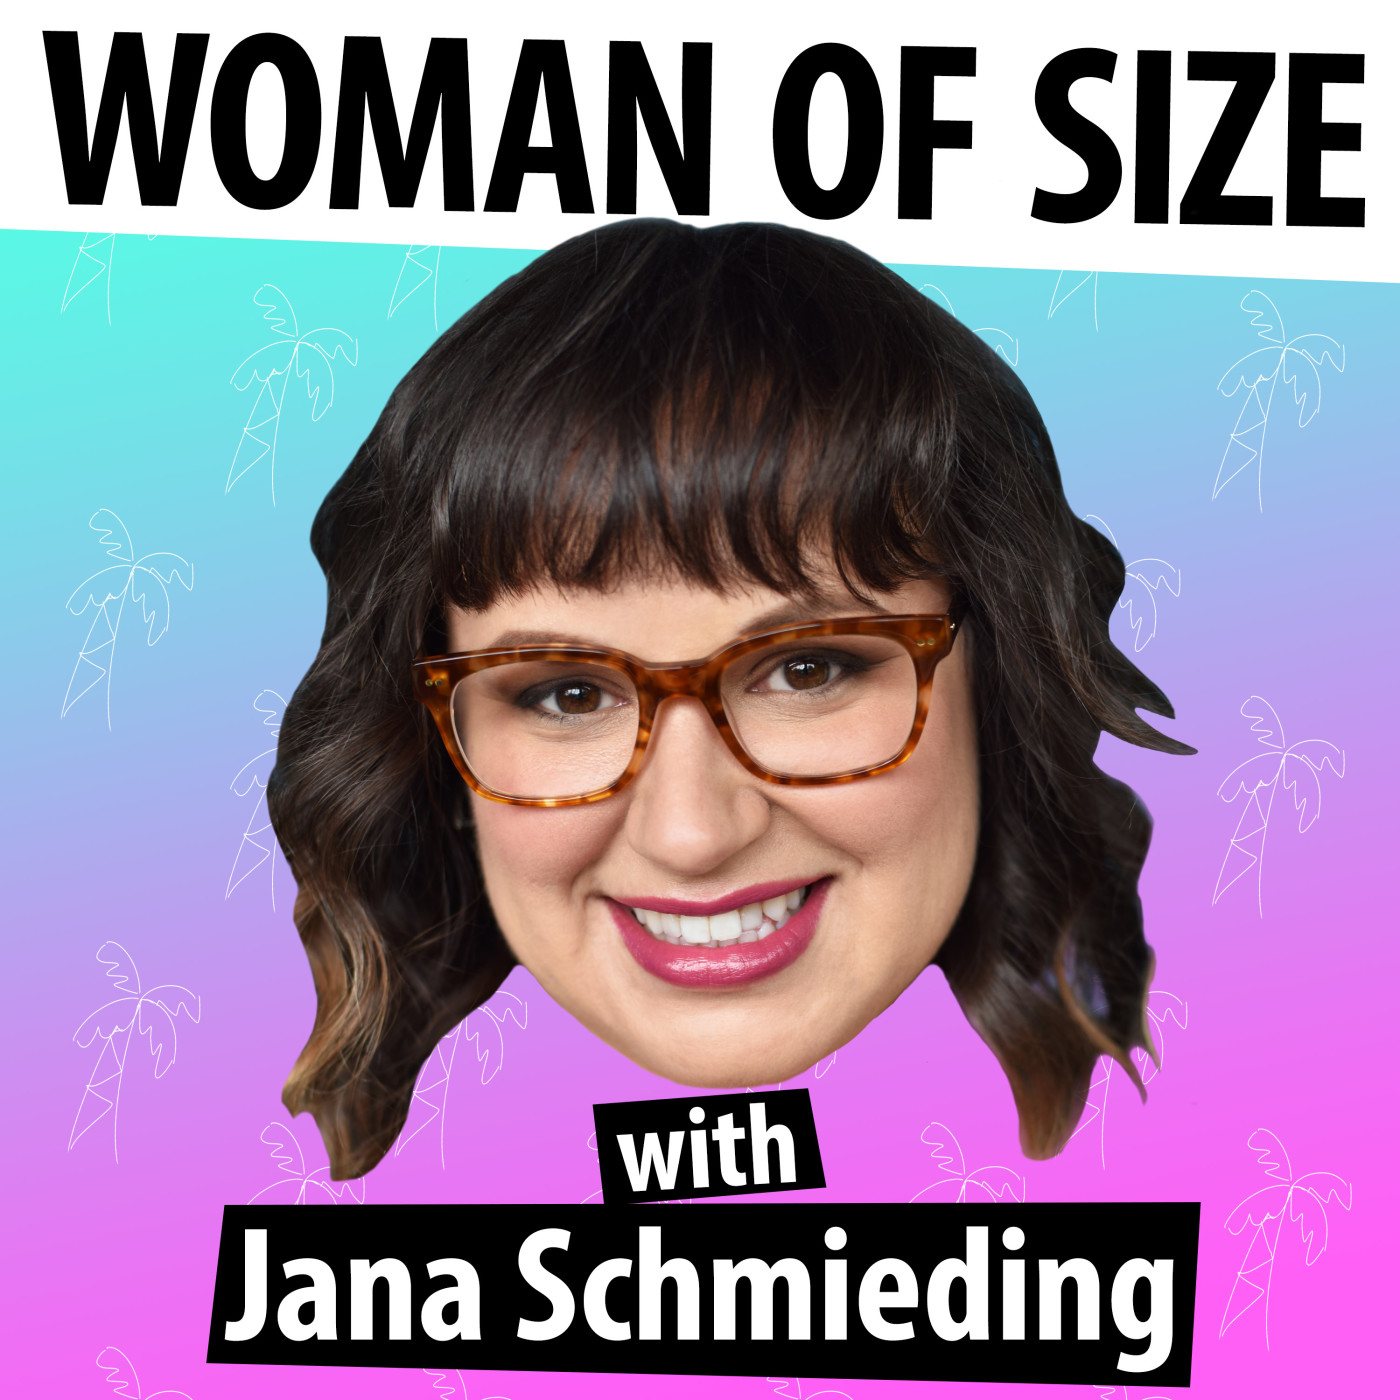 Remarkable, useful chubby willing women Bravo, magnificent